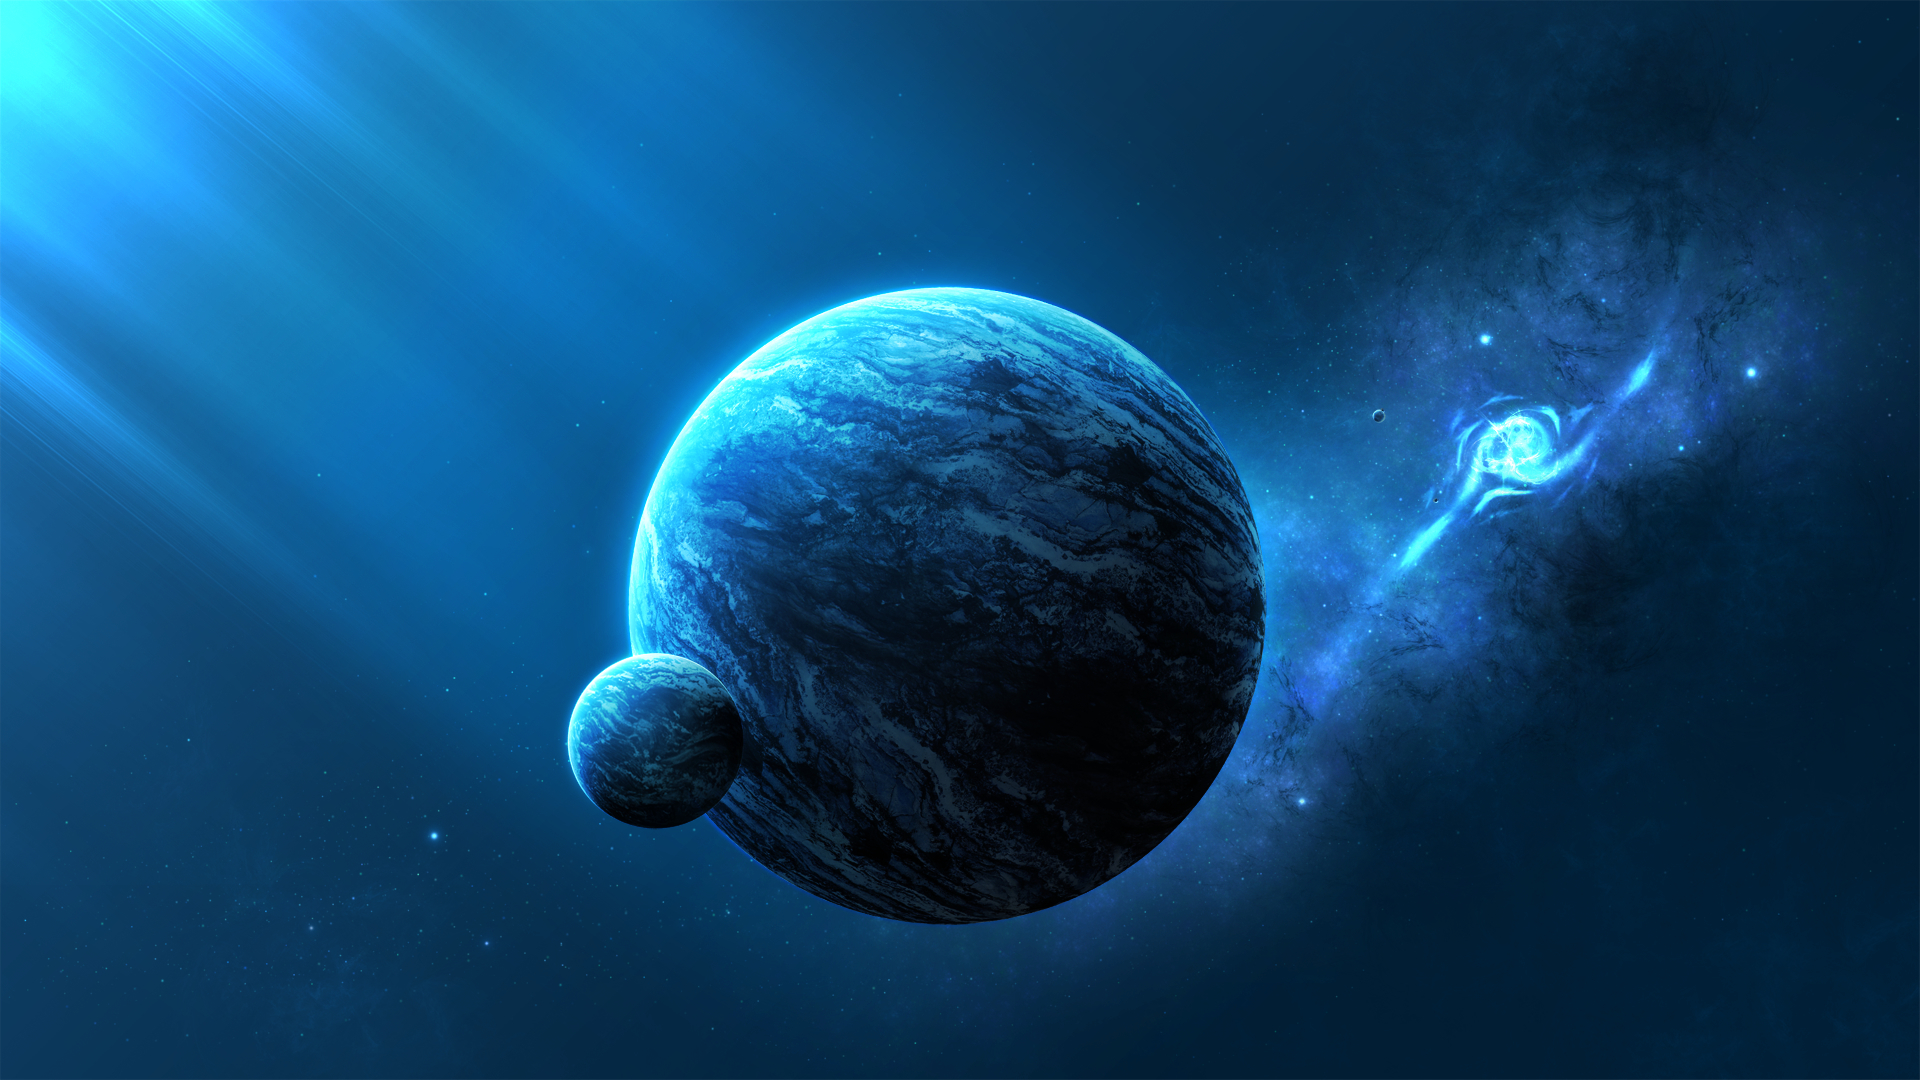 outer Space planets deviantart HD Wallpaper